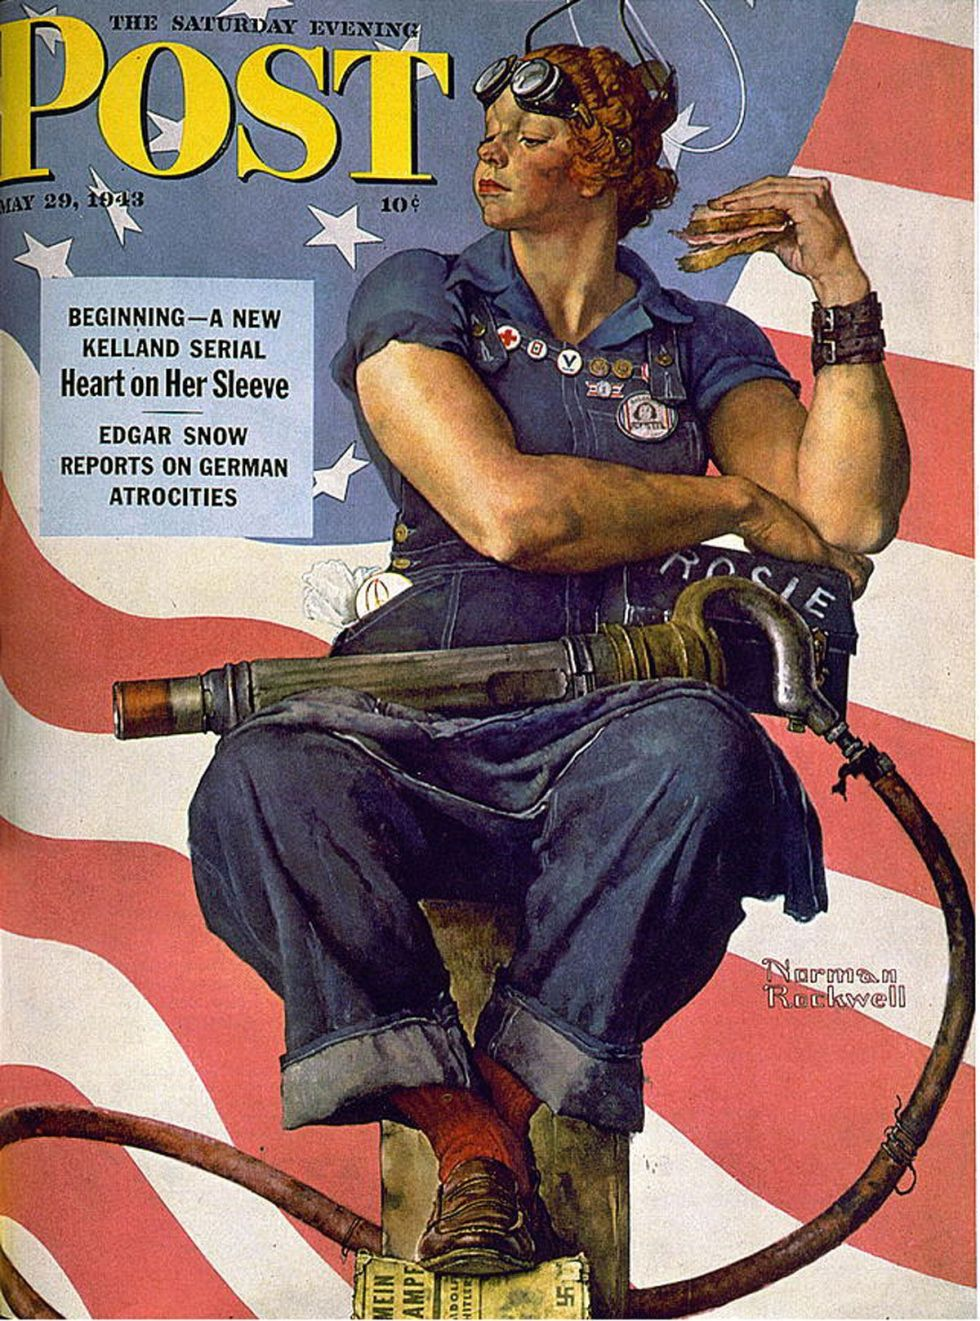 Norman Rockwell's 'The Saturday Evening Post' 1943 cover featuring Rosie the Riveter